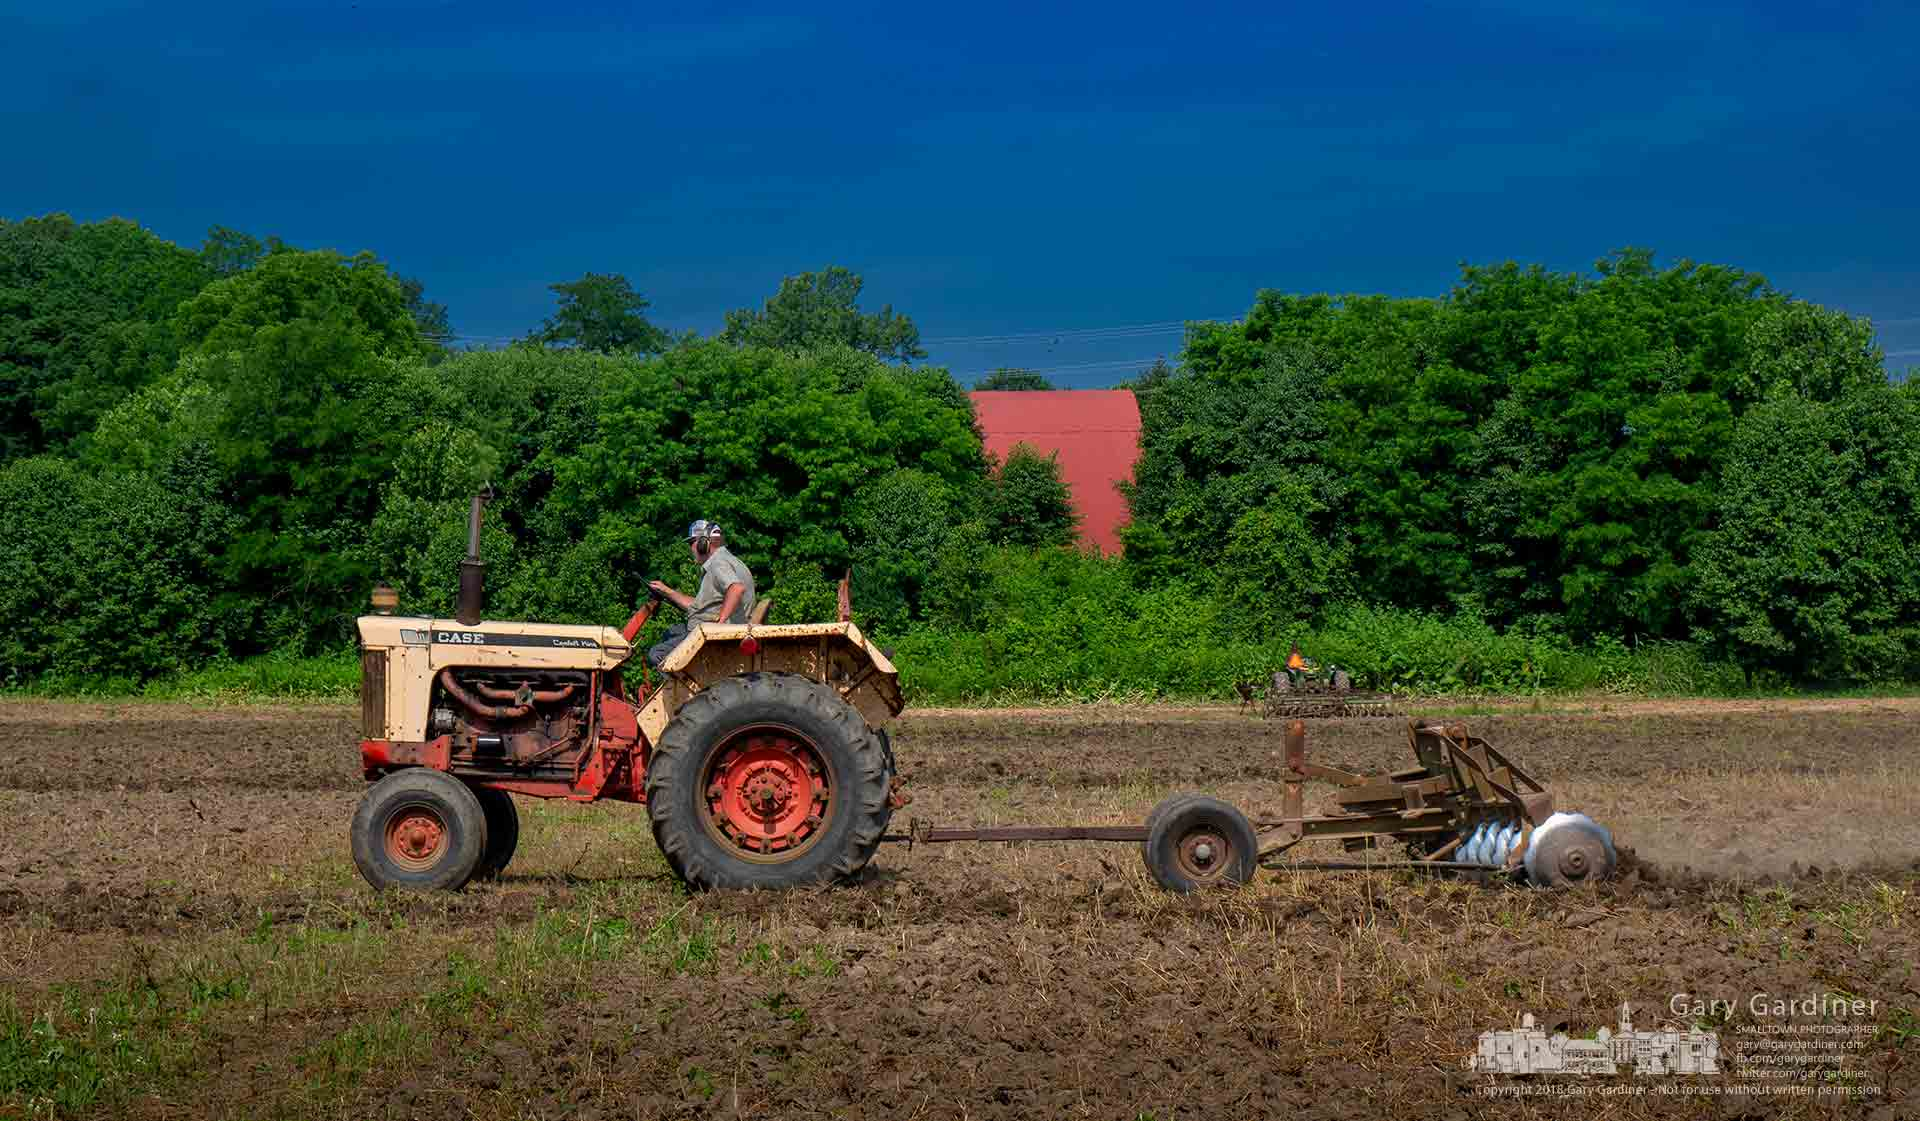 Farmer Tom runs a 12-bladed disc through the main field at the Braun Farm in preparation for planting soybeans a little later than normal. My Final Photo for June 18, 2018.